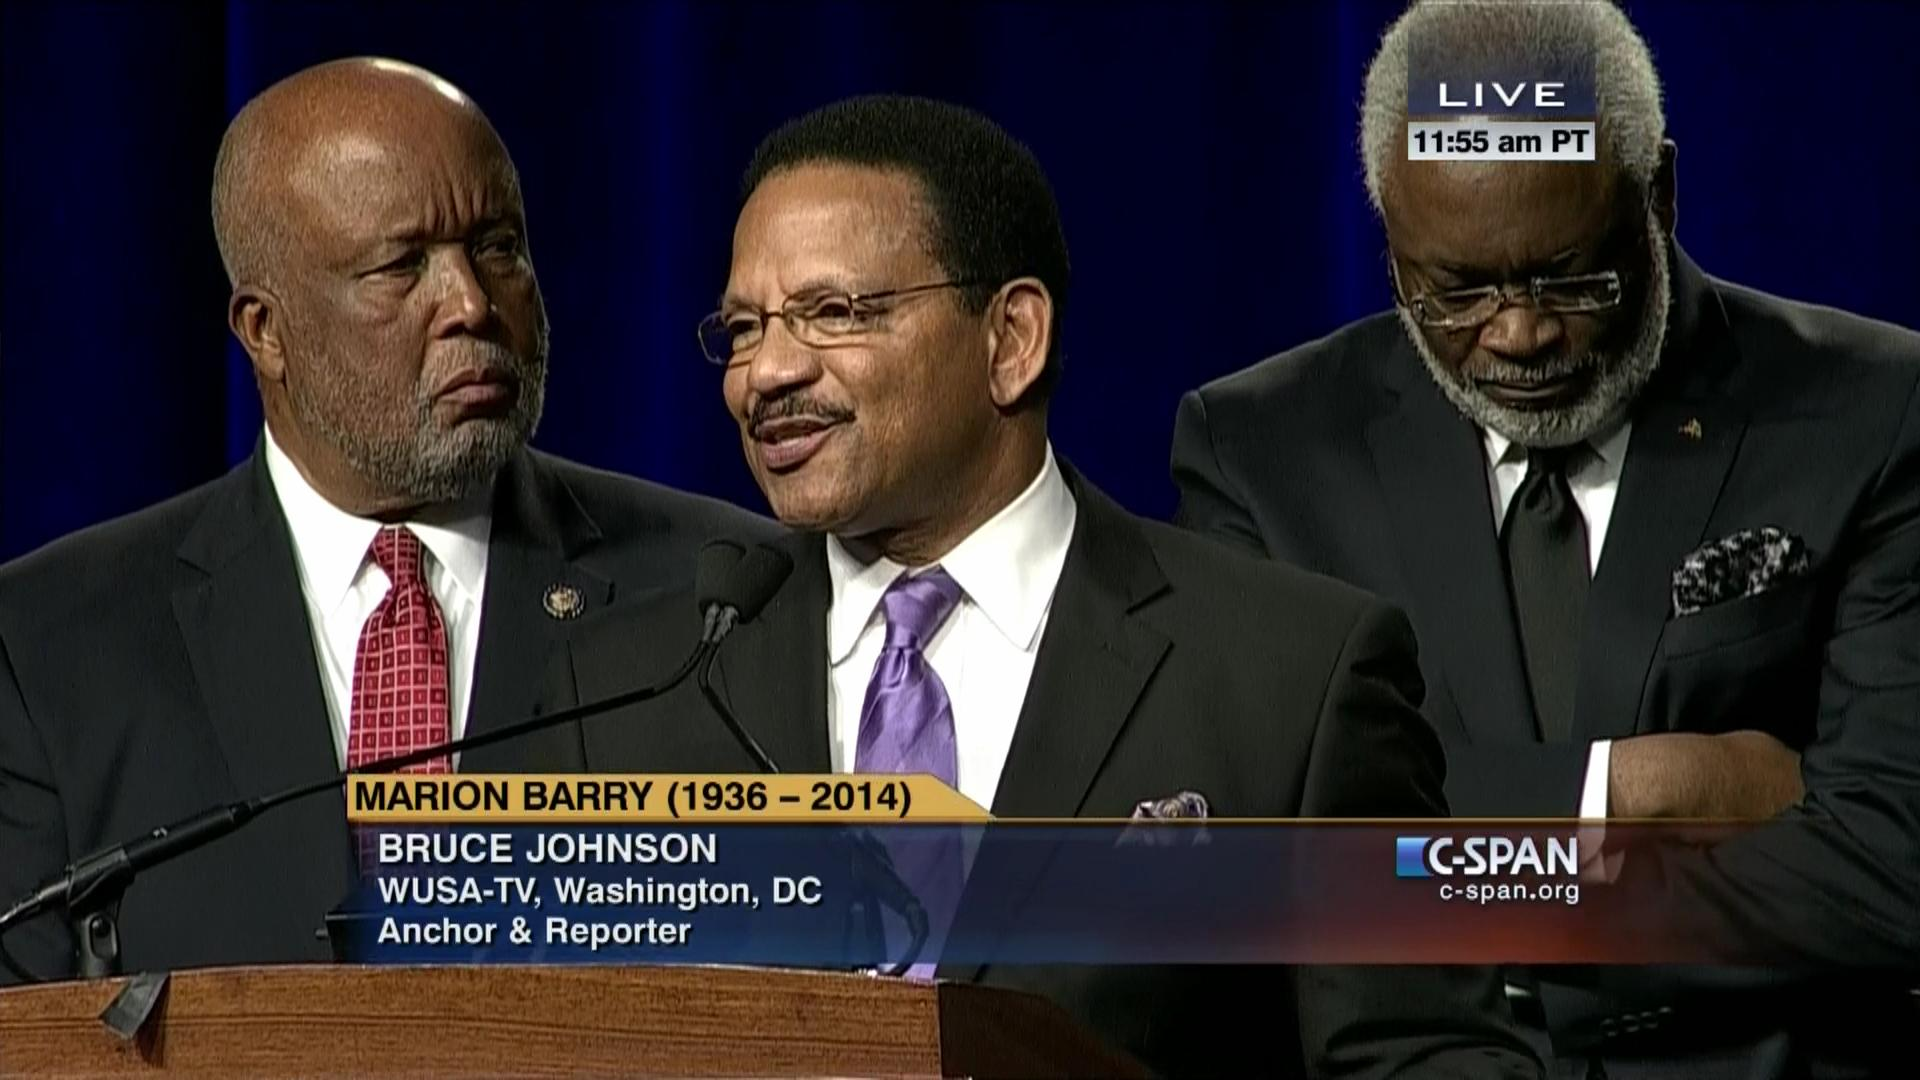 Bruce Johnson at Marion Barry funeral